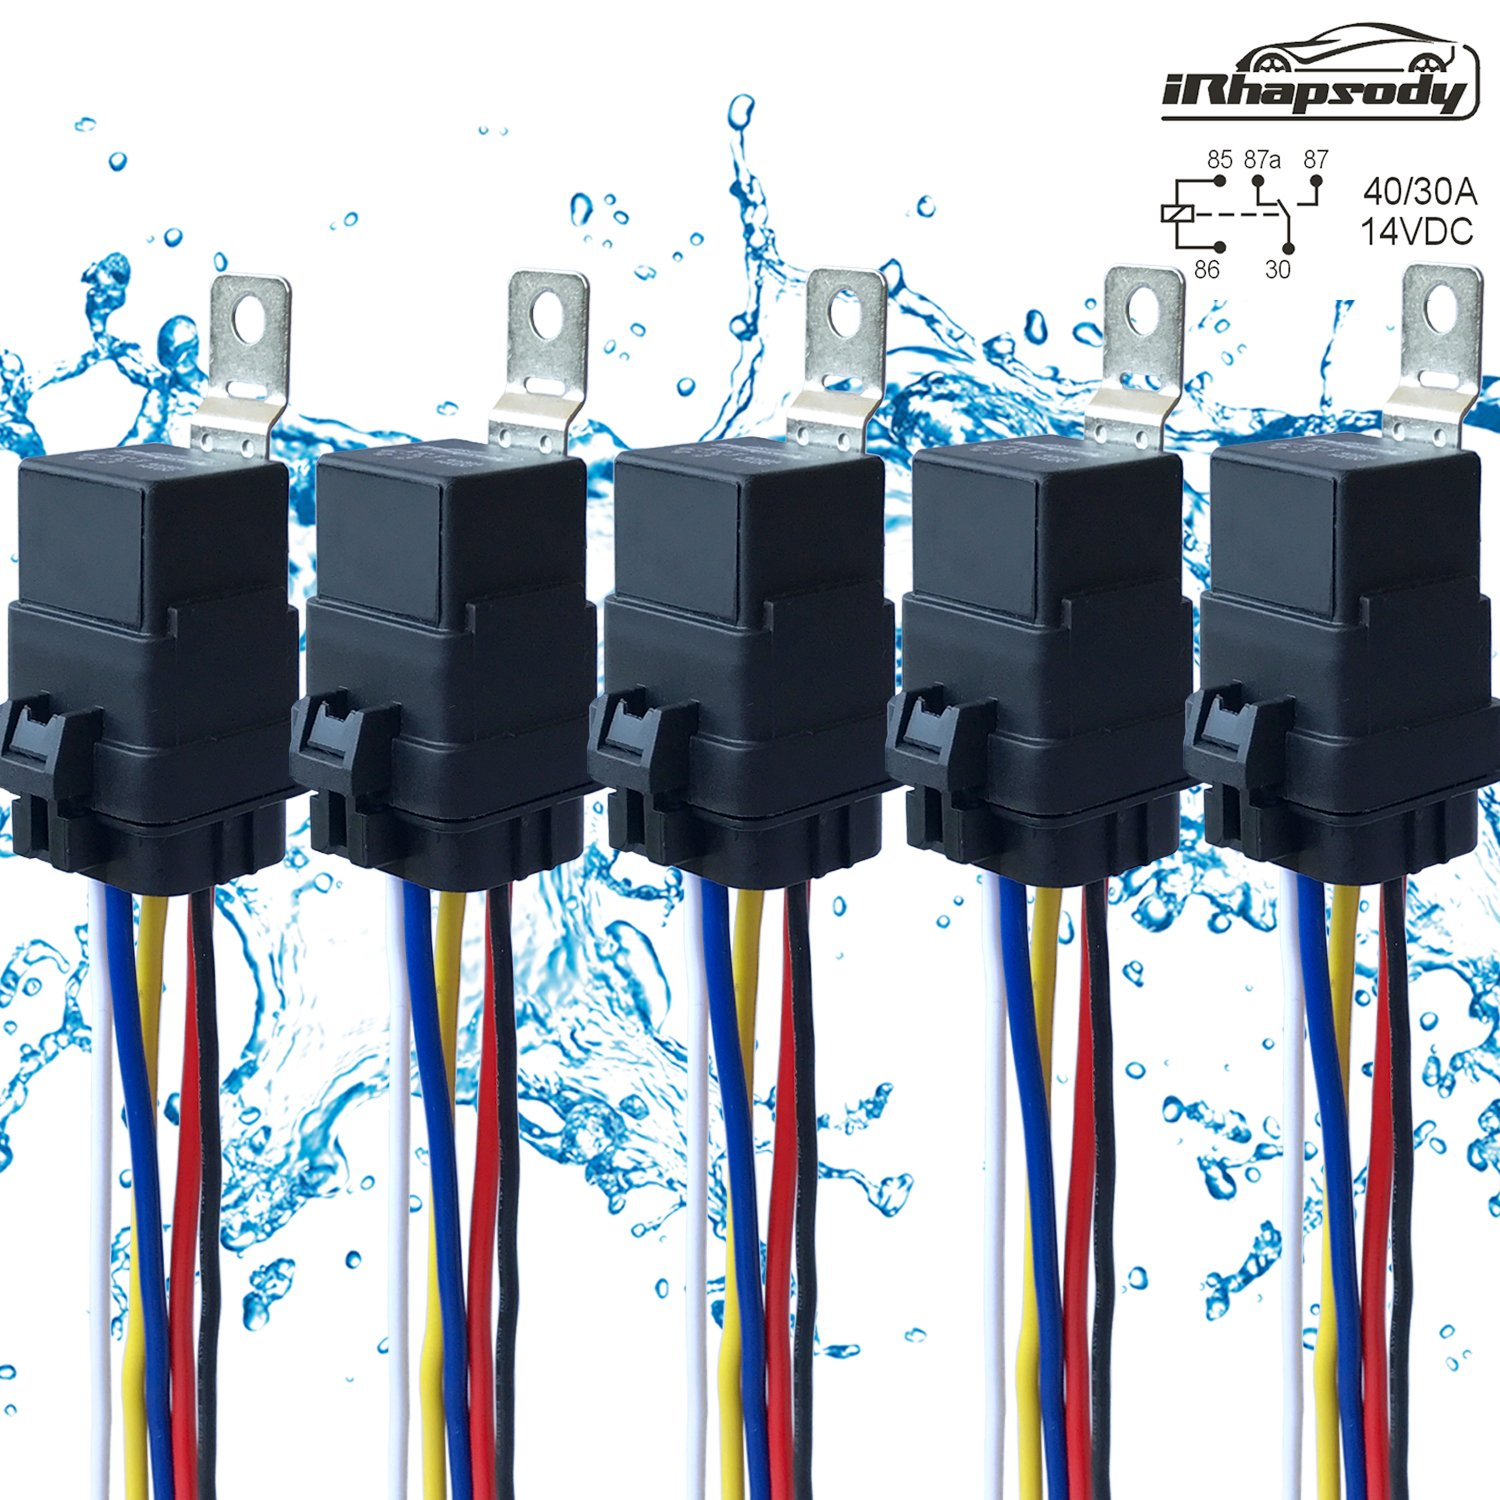 5 PACK 40/30 AMP Waterproof Relay and Harness - Heavy Duty 12 AWG Wiring Harness - 12V DC 5-PIN SPDT Bosch Style Automotive Relay IRHAPSODY